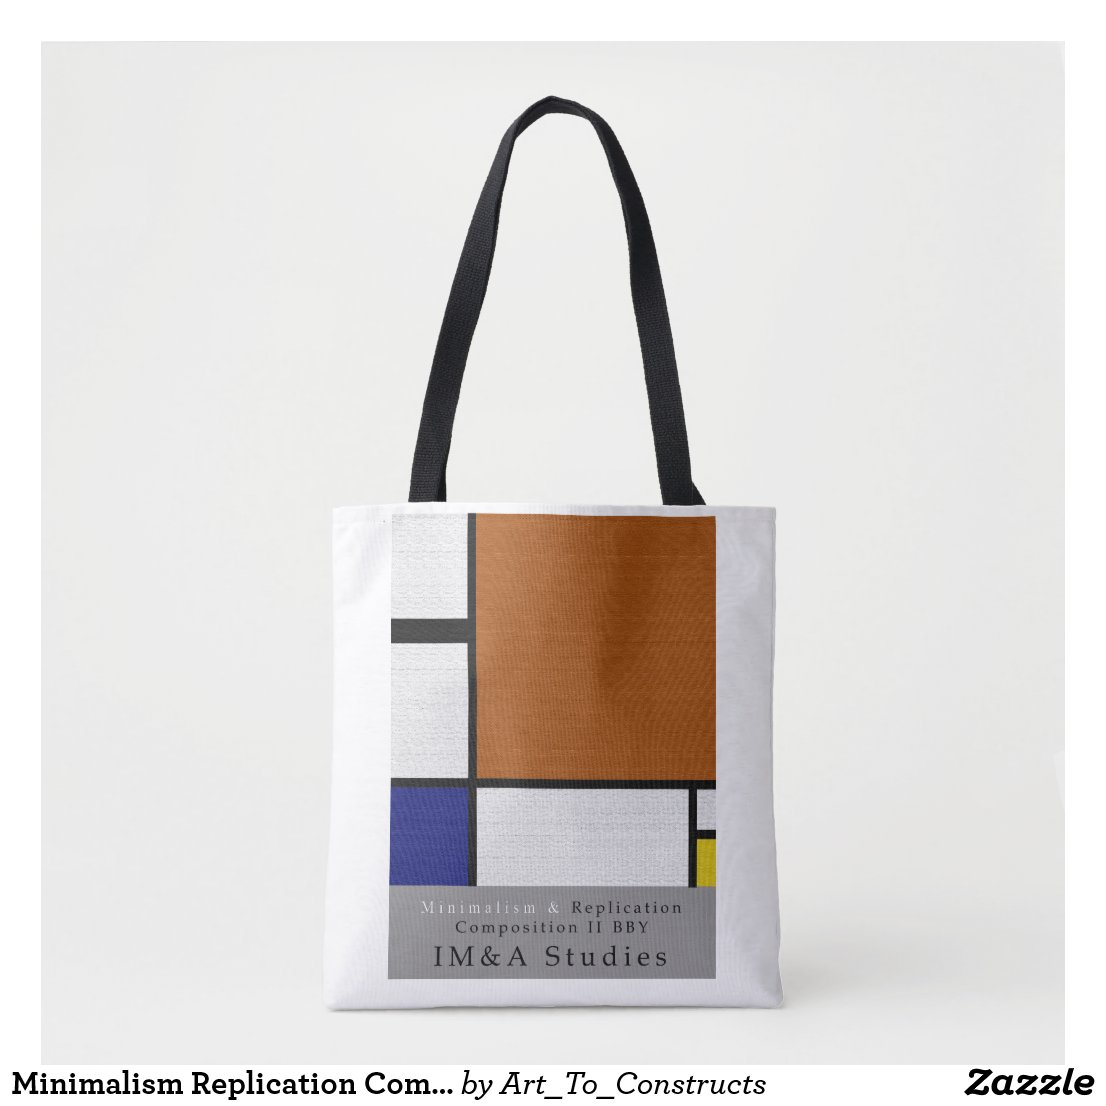 Minimalism Replication Composition II BBY Tote